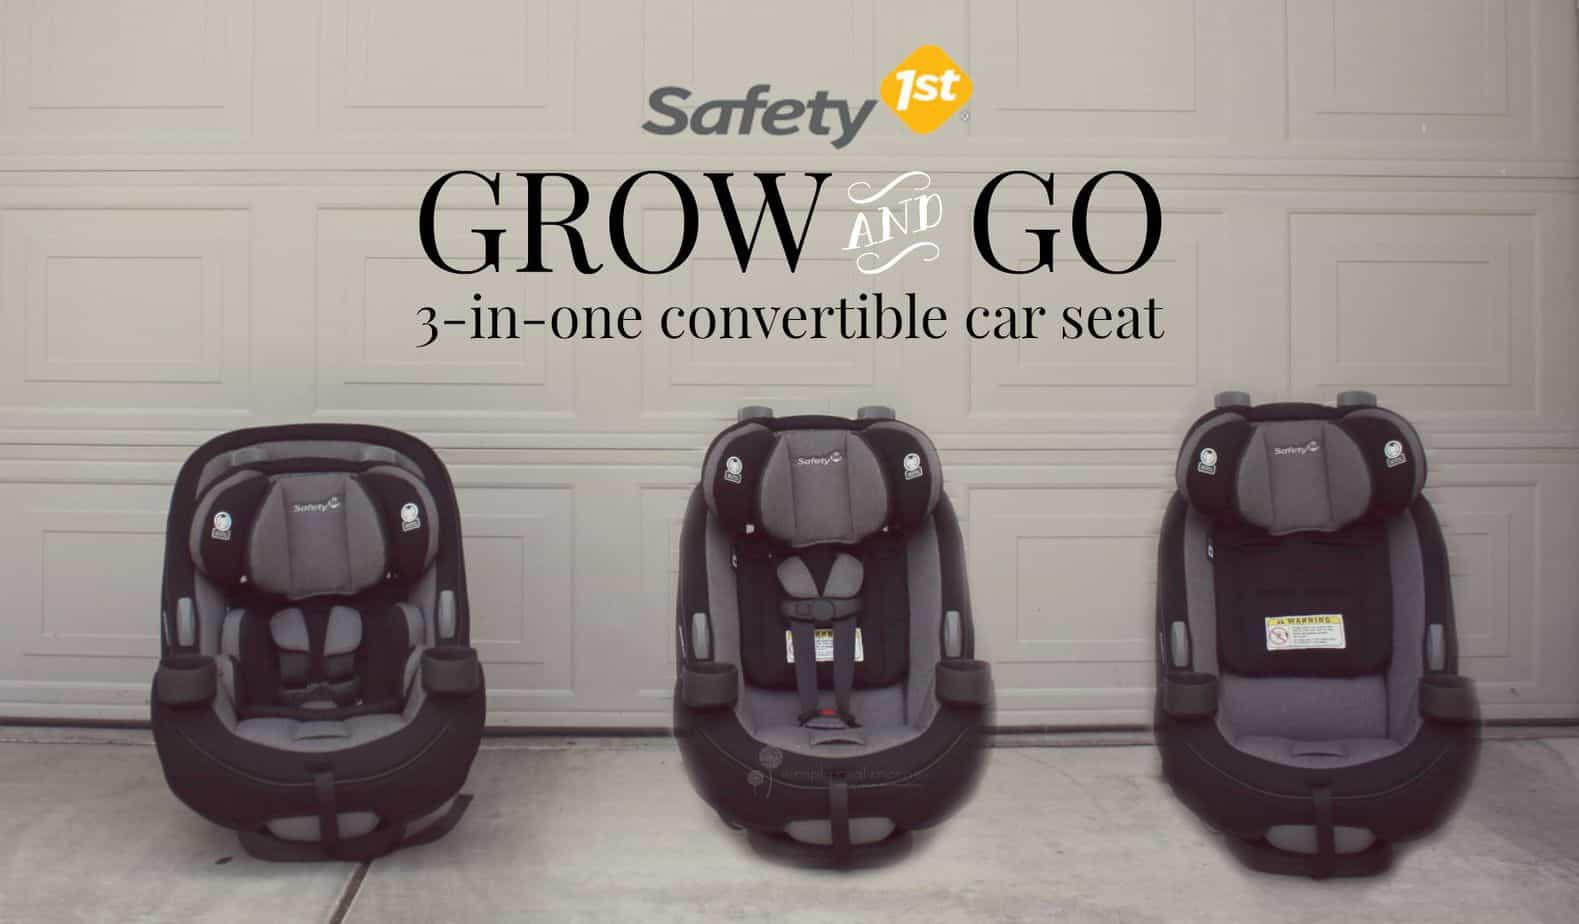 travel safety tips with safety 1st 39 s new grow and go car seat simply real moms. Black Bedroom Furniture Sets. Home Design Ideas